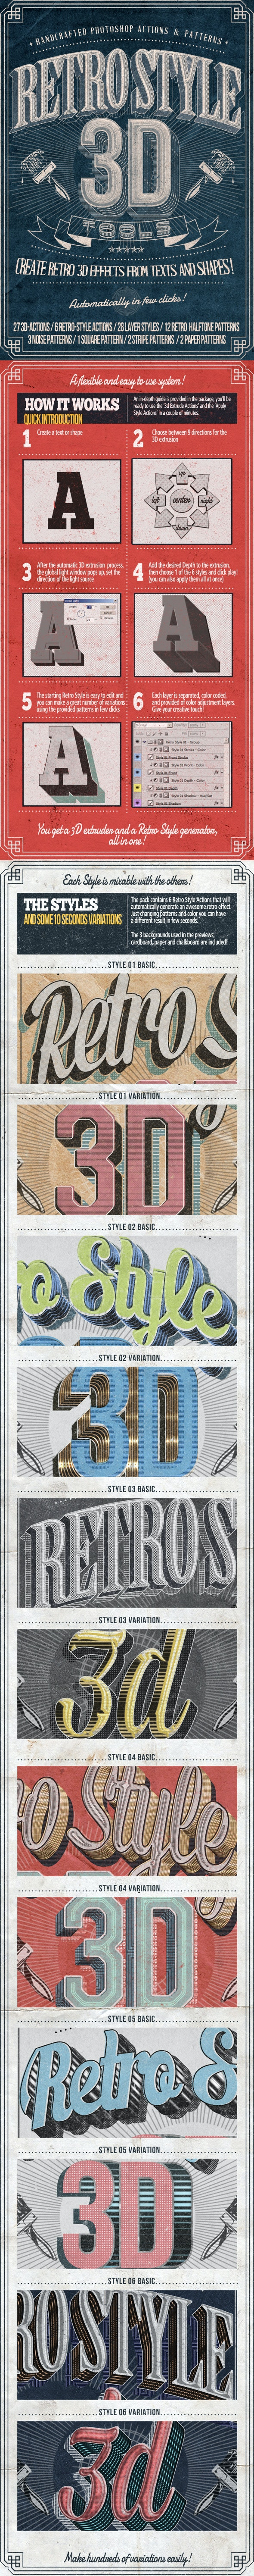 Retro Style 3D Tools - Photoshop Actions - Photoshop Add-ons